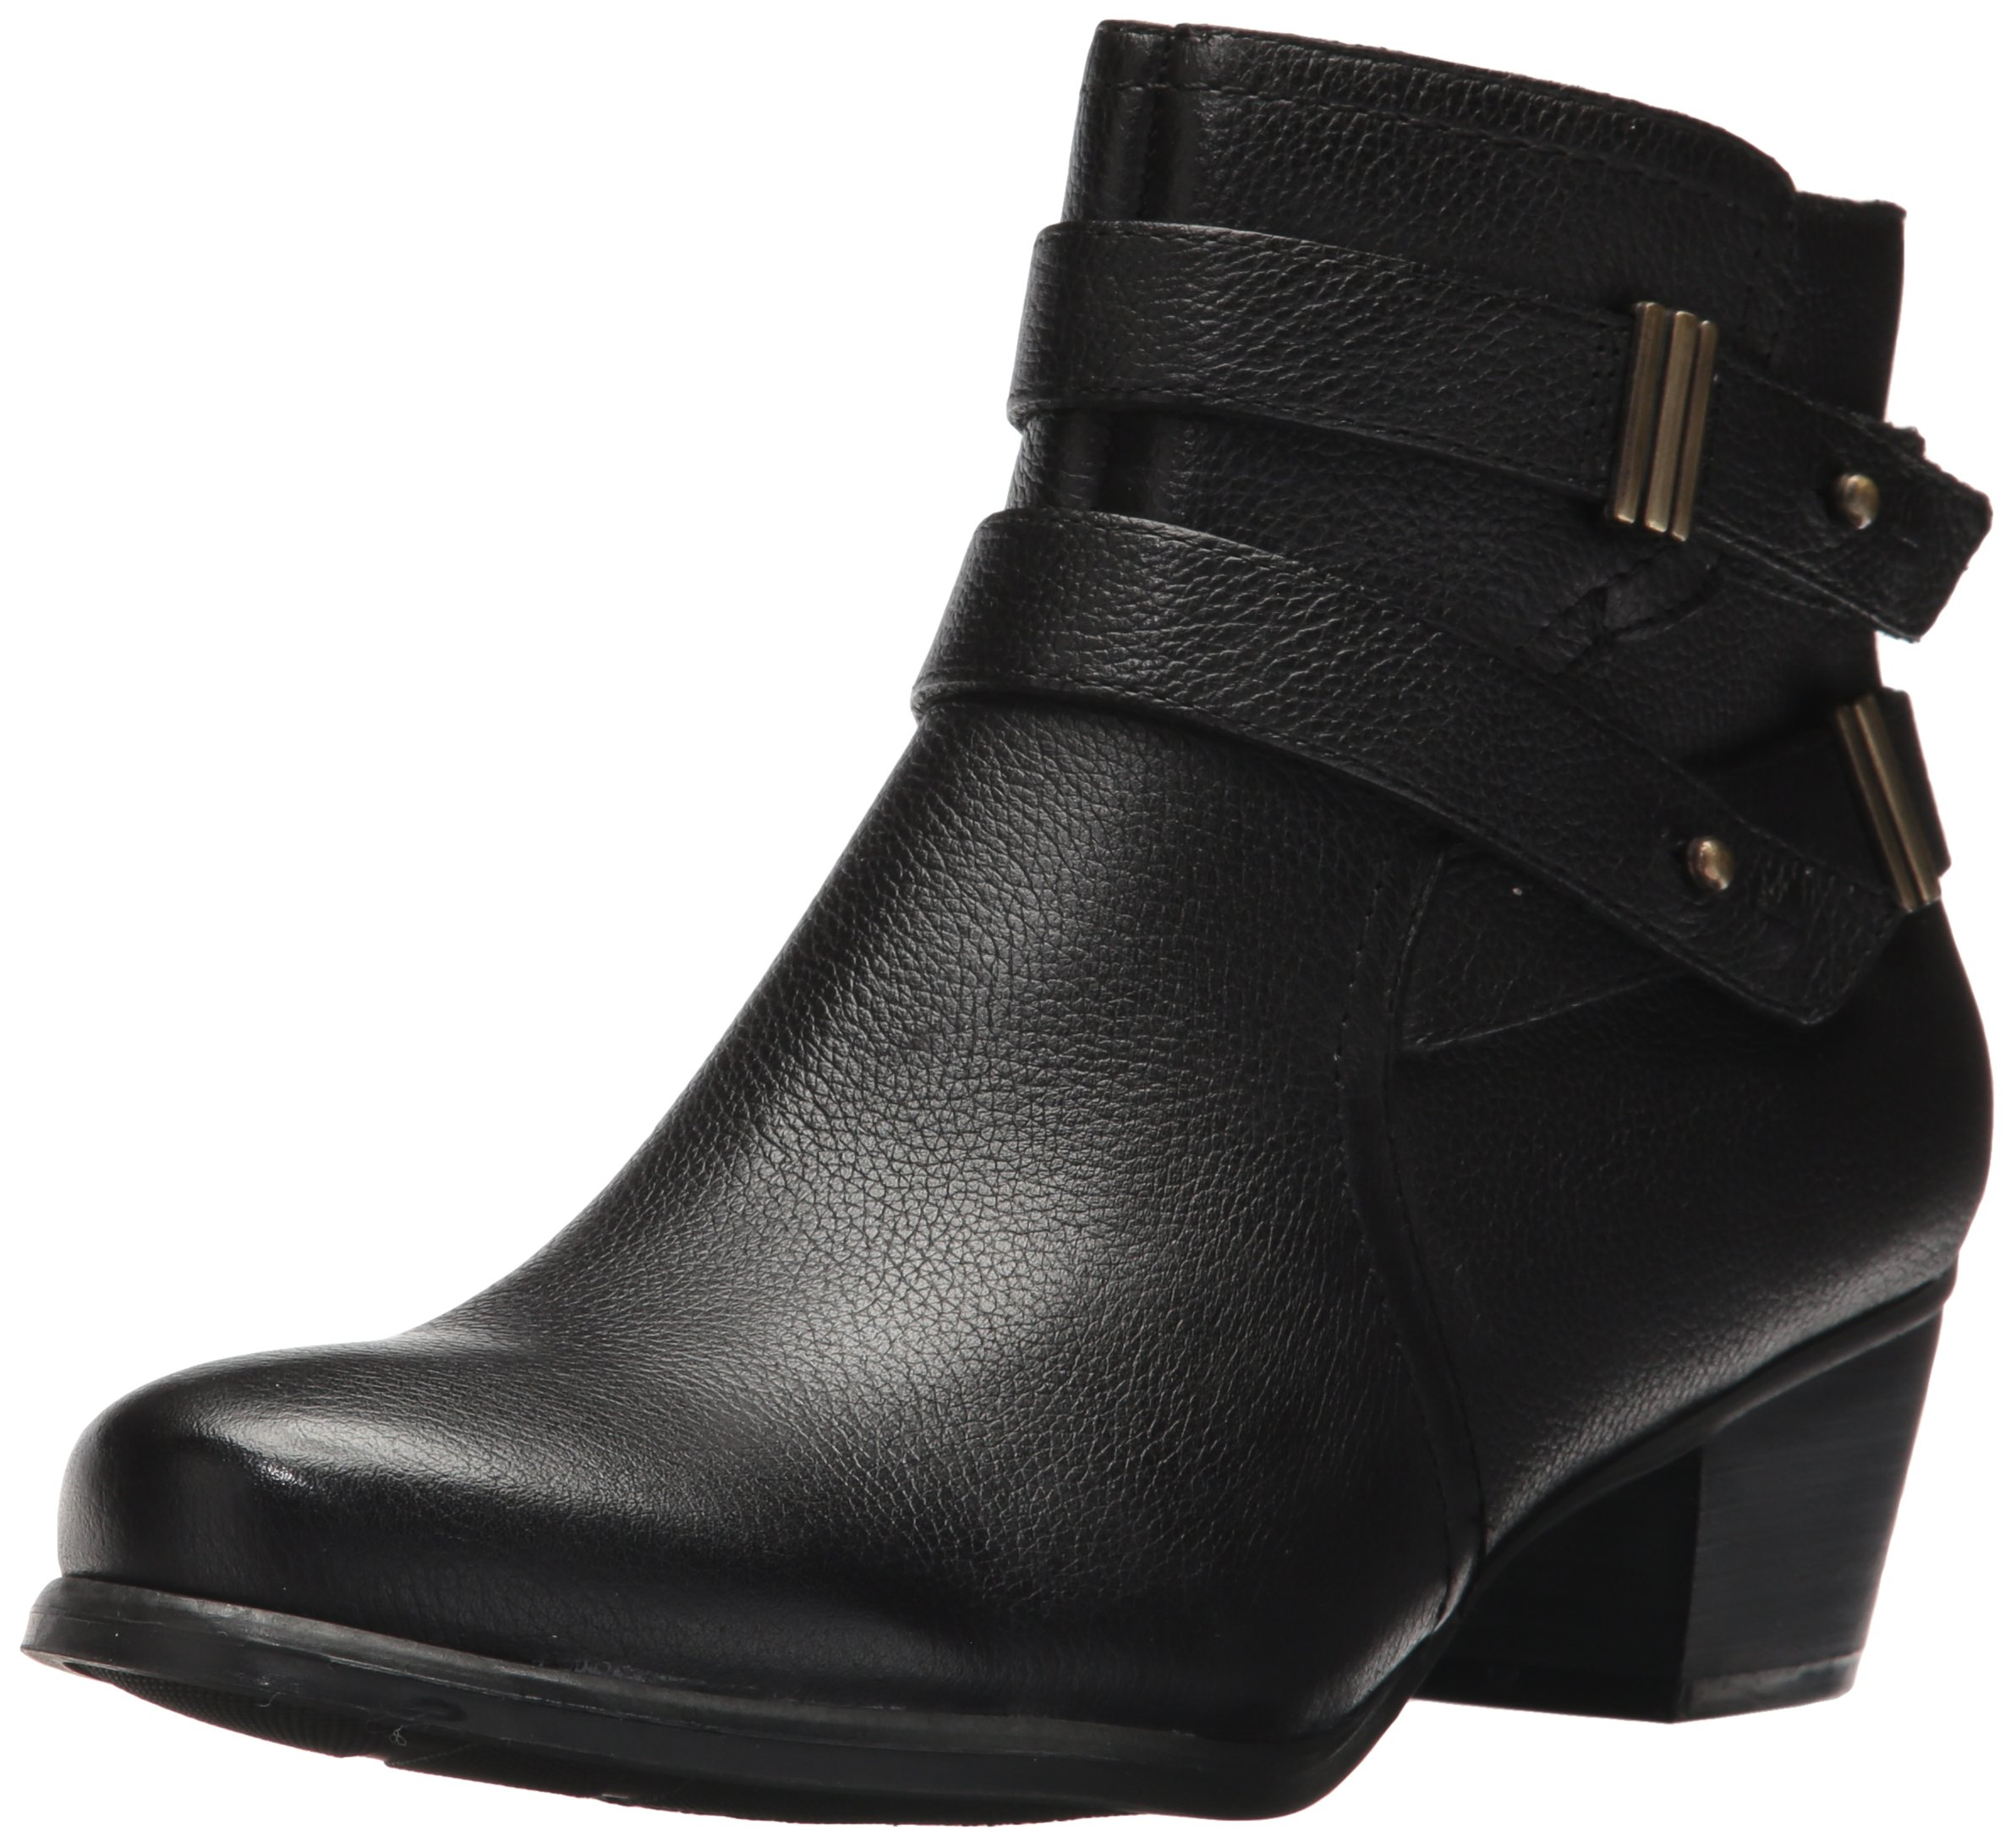 Naturalizer Women's Kepler Leather Closed Toe Ankle Fashion Boots Black Leather Size 7 W US